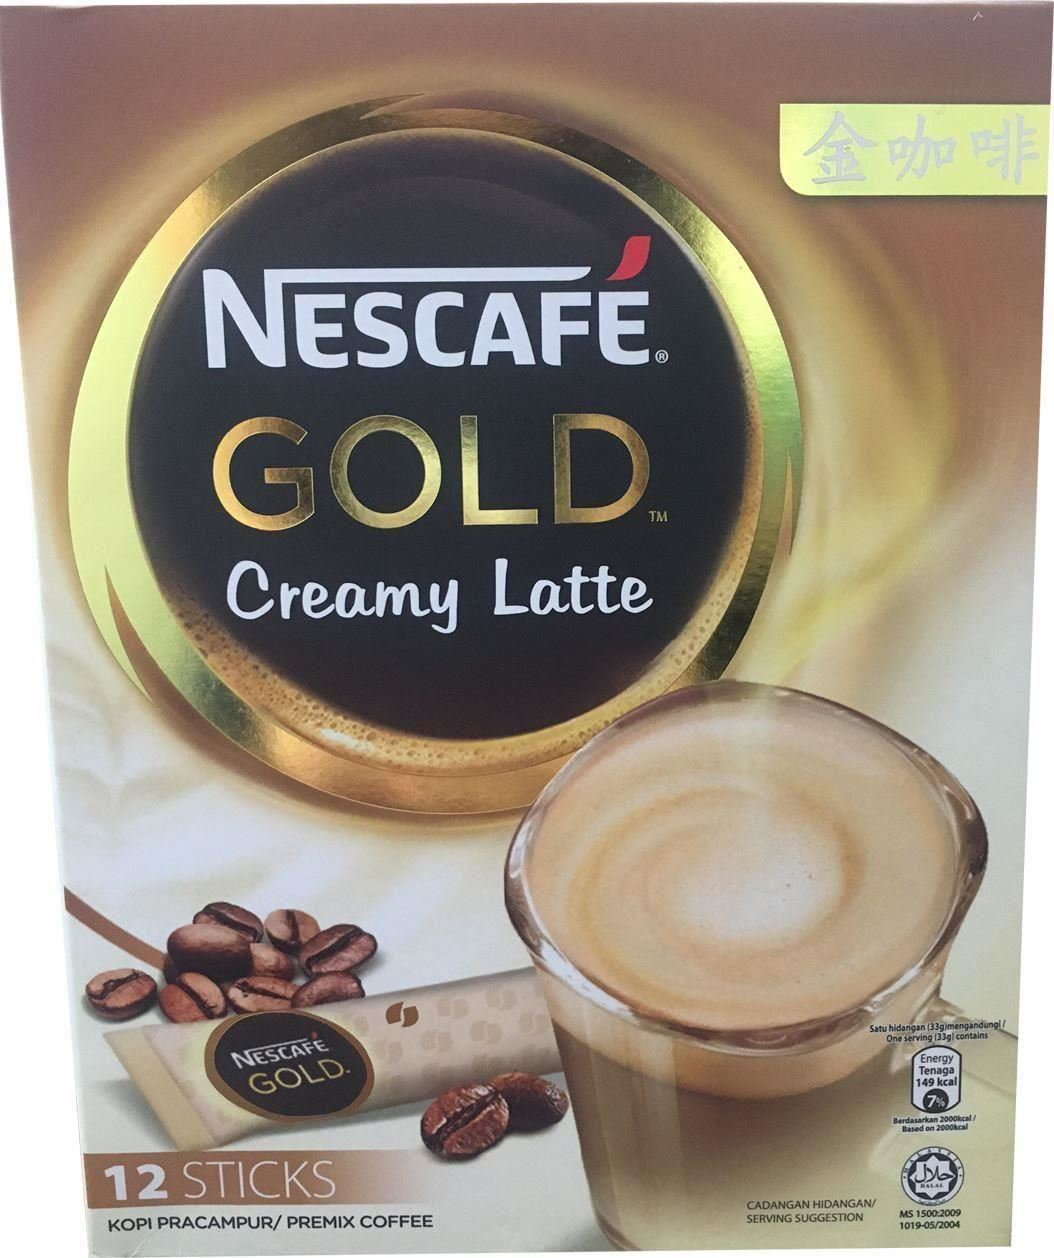 Nescafe Gold Dark Latte & Creamy Latte Premix Coffee